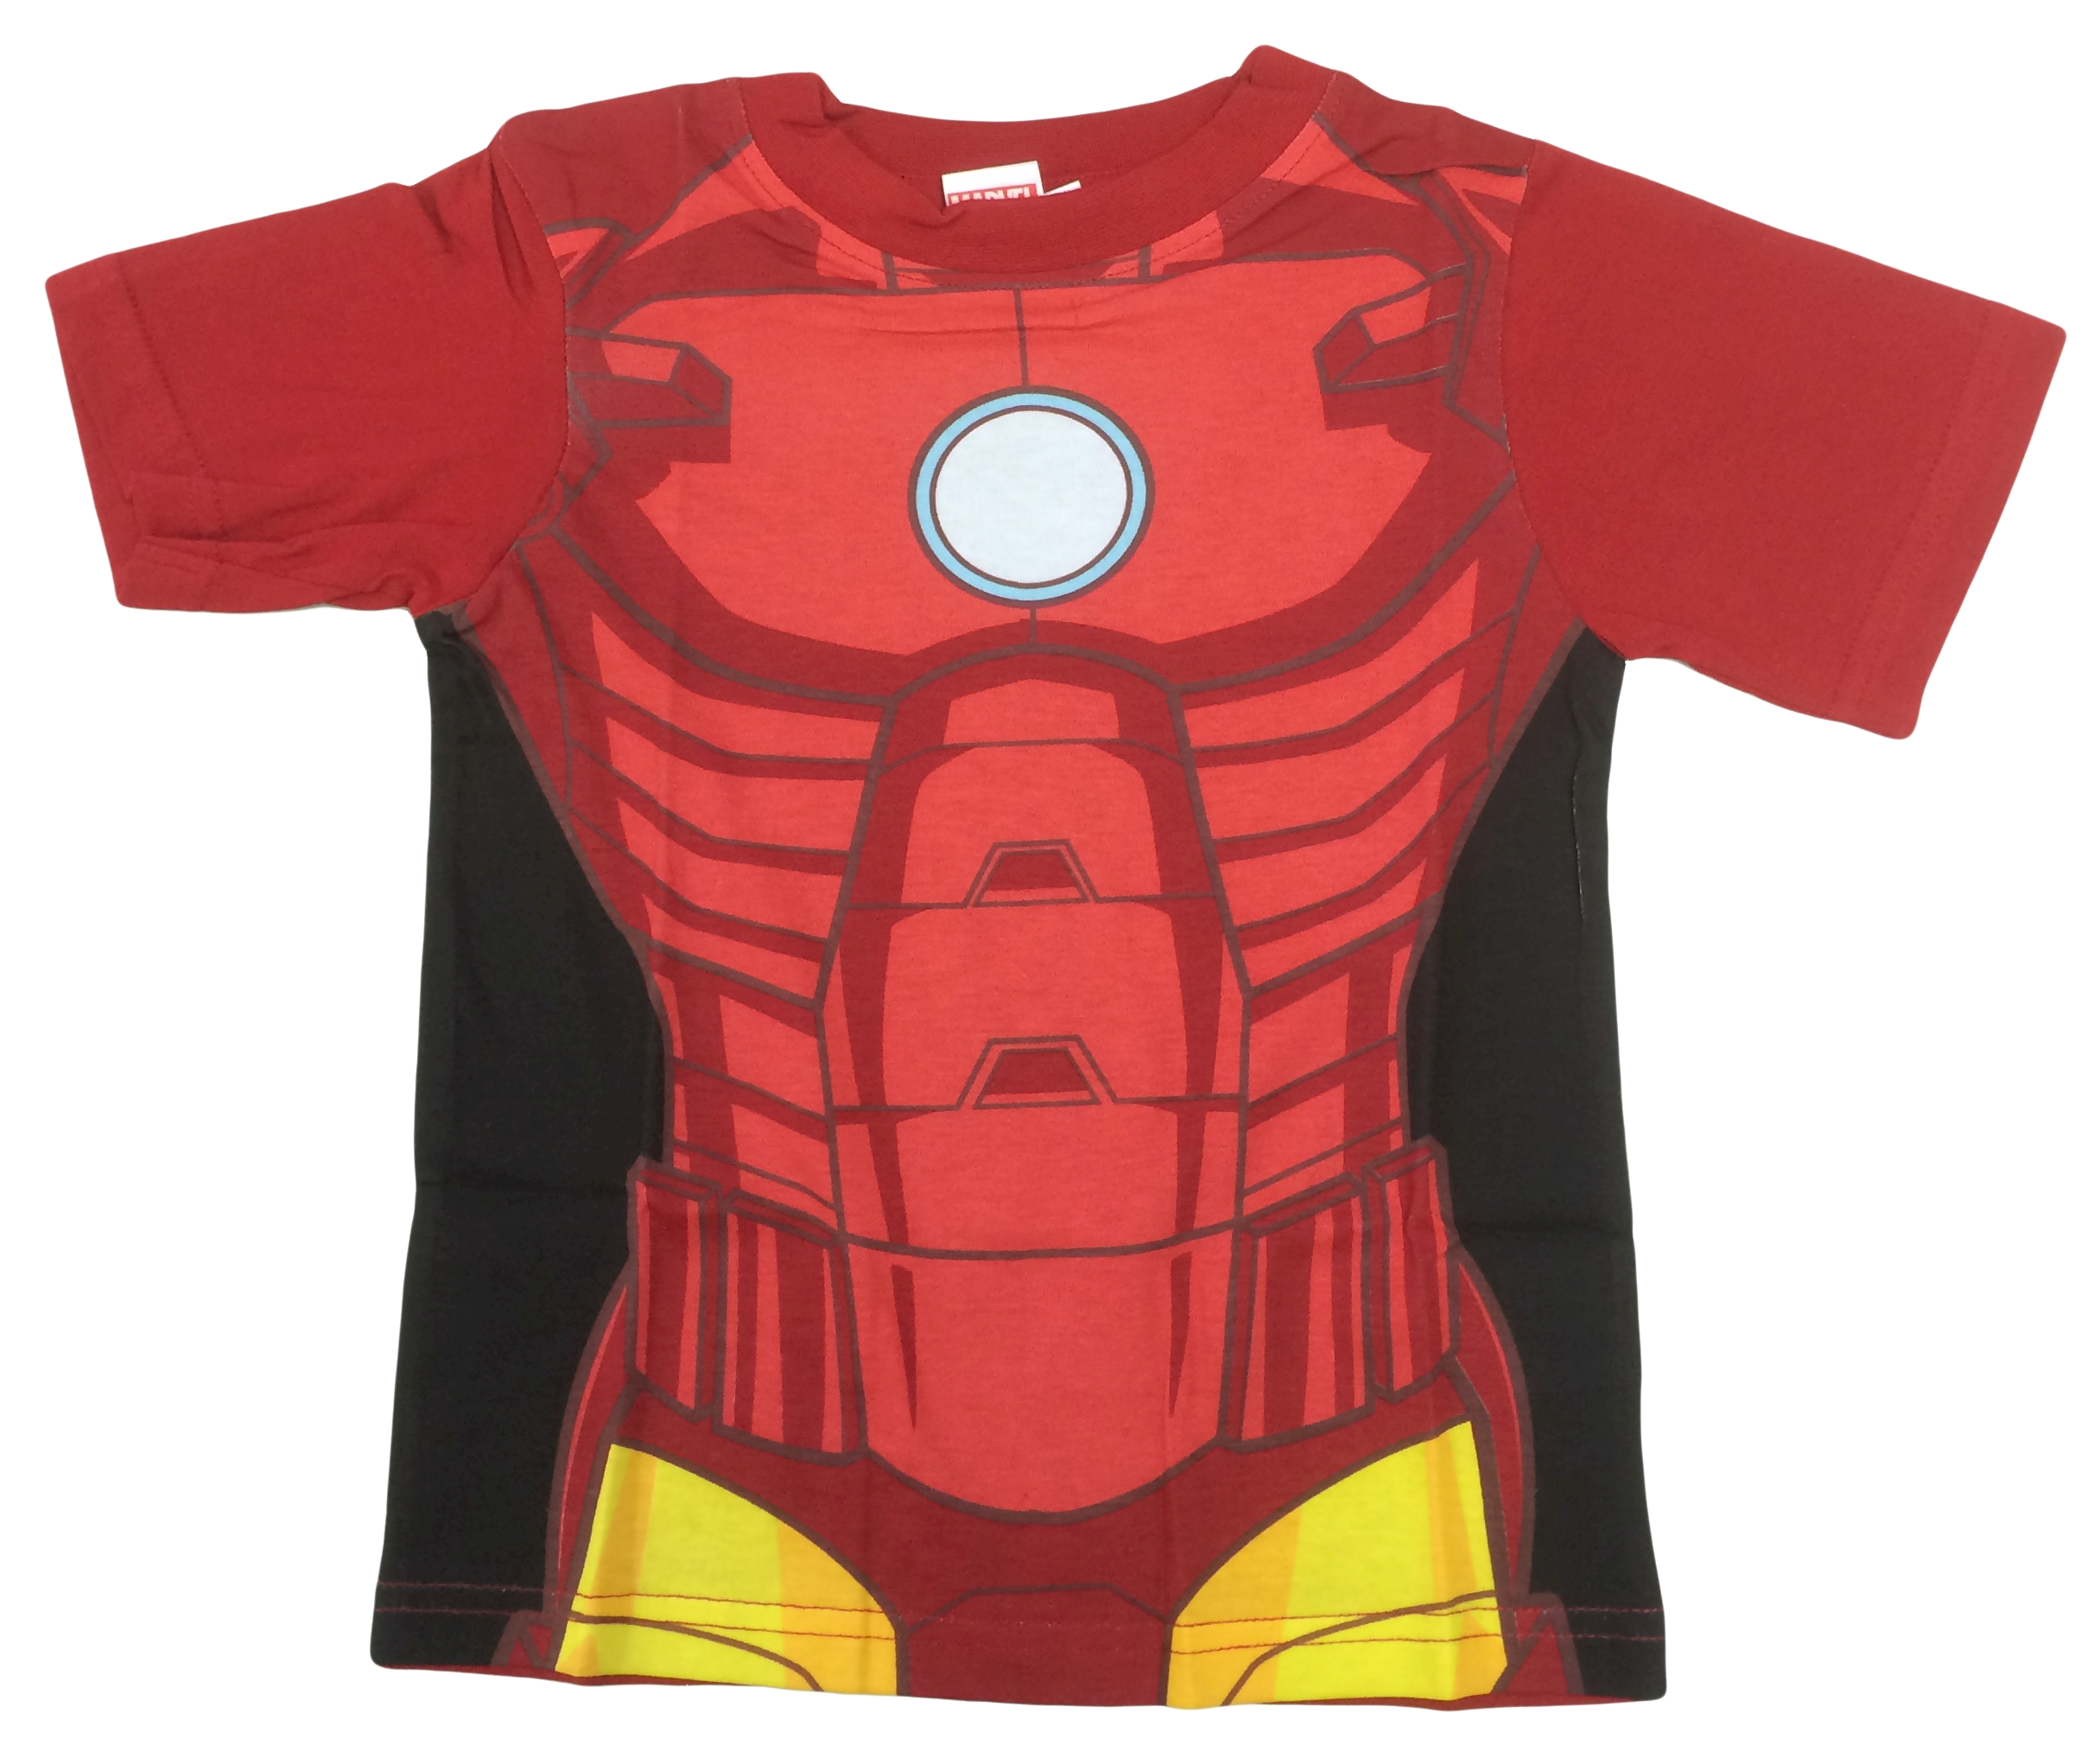 Marvel Avengers Costume T Shirt Assortment Get Retro